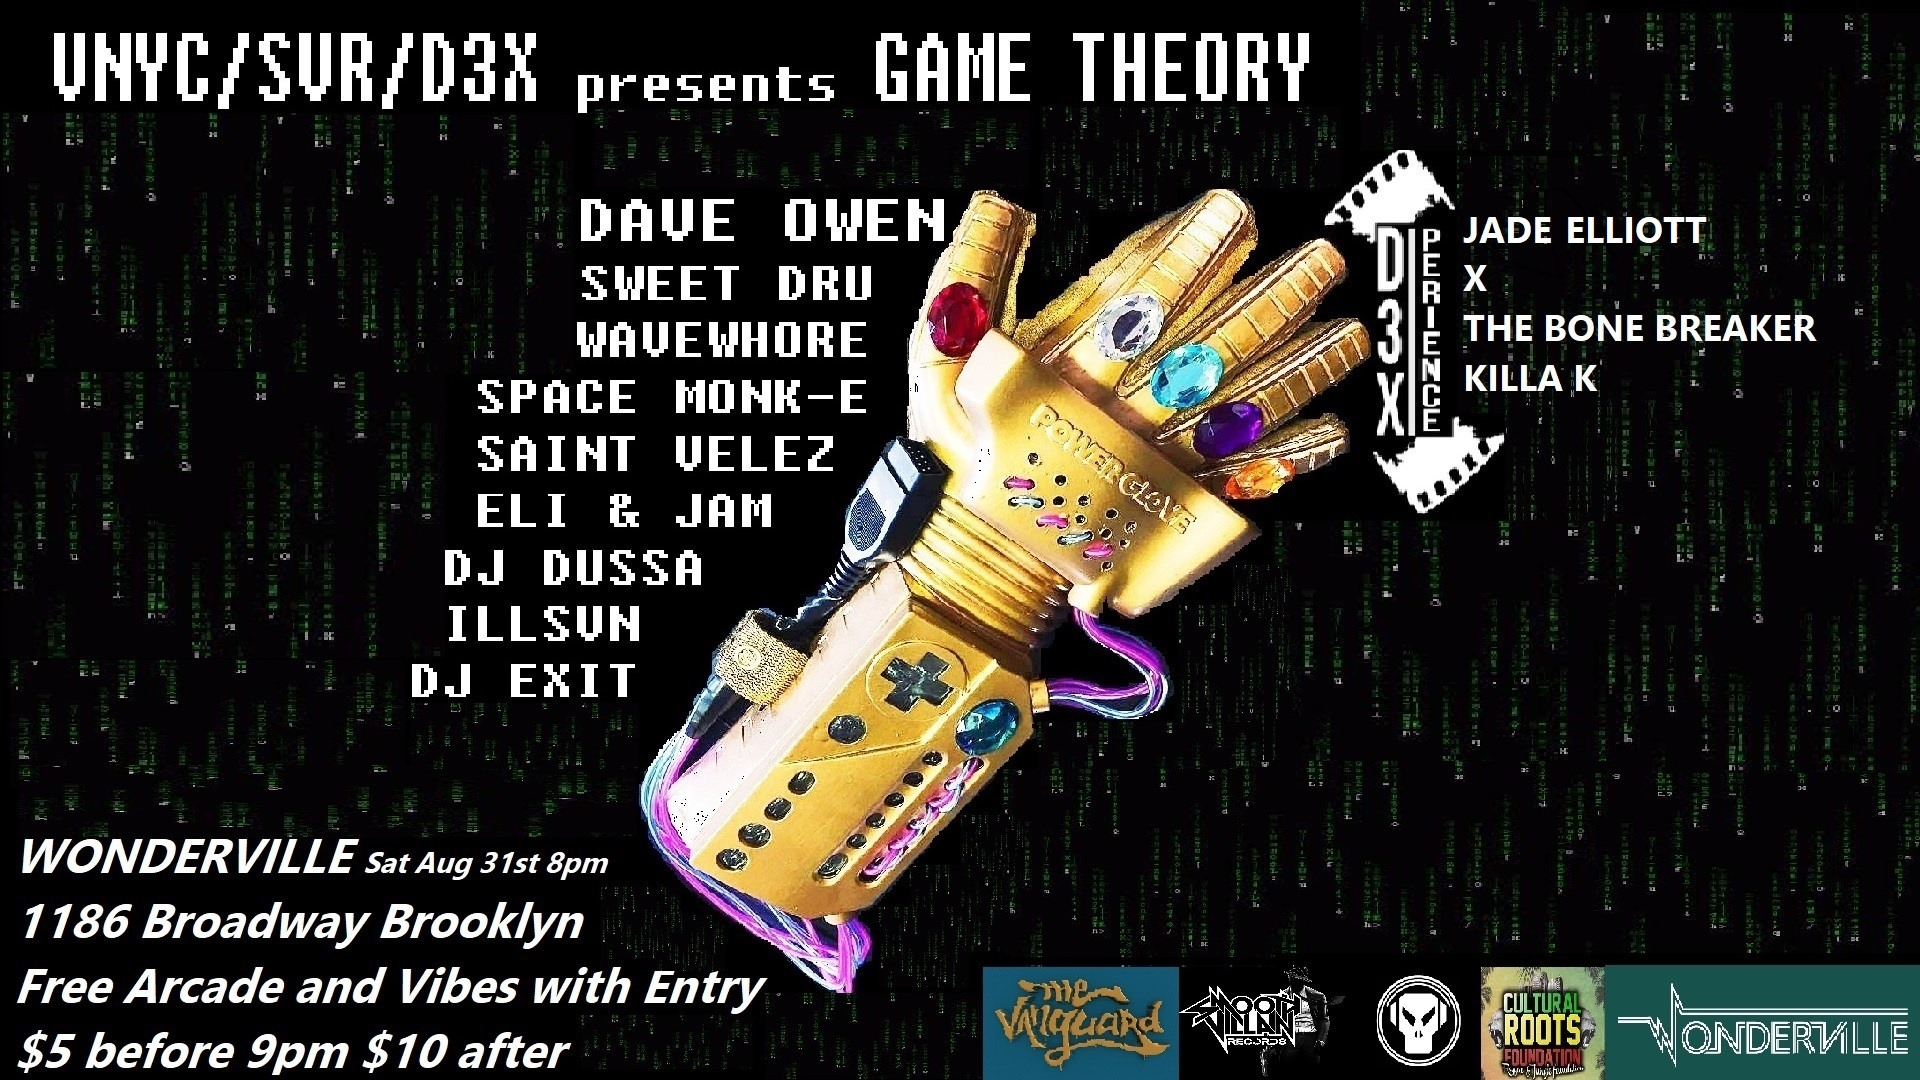 Tickets:  https://withfriends.co/Event/2348673/GAME_Theory_ft_Dave_Owen_and_D3X